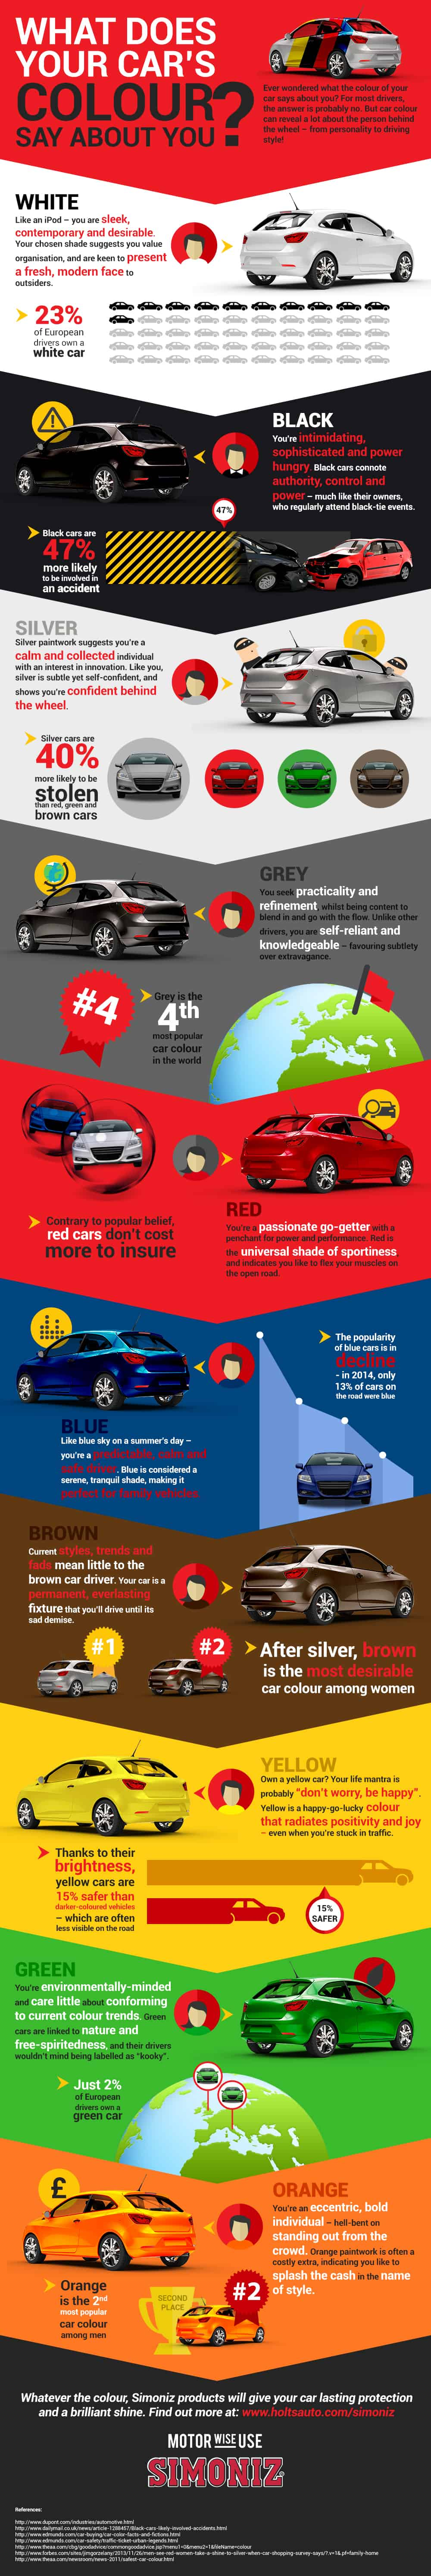 What colour is your car -  What Your Car S Colour Says About You Infographic By Simoniz